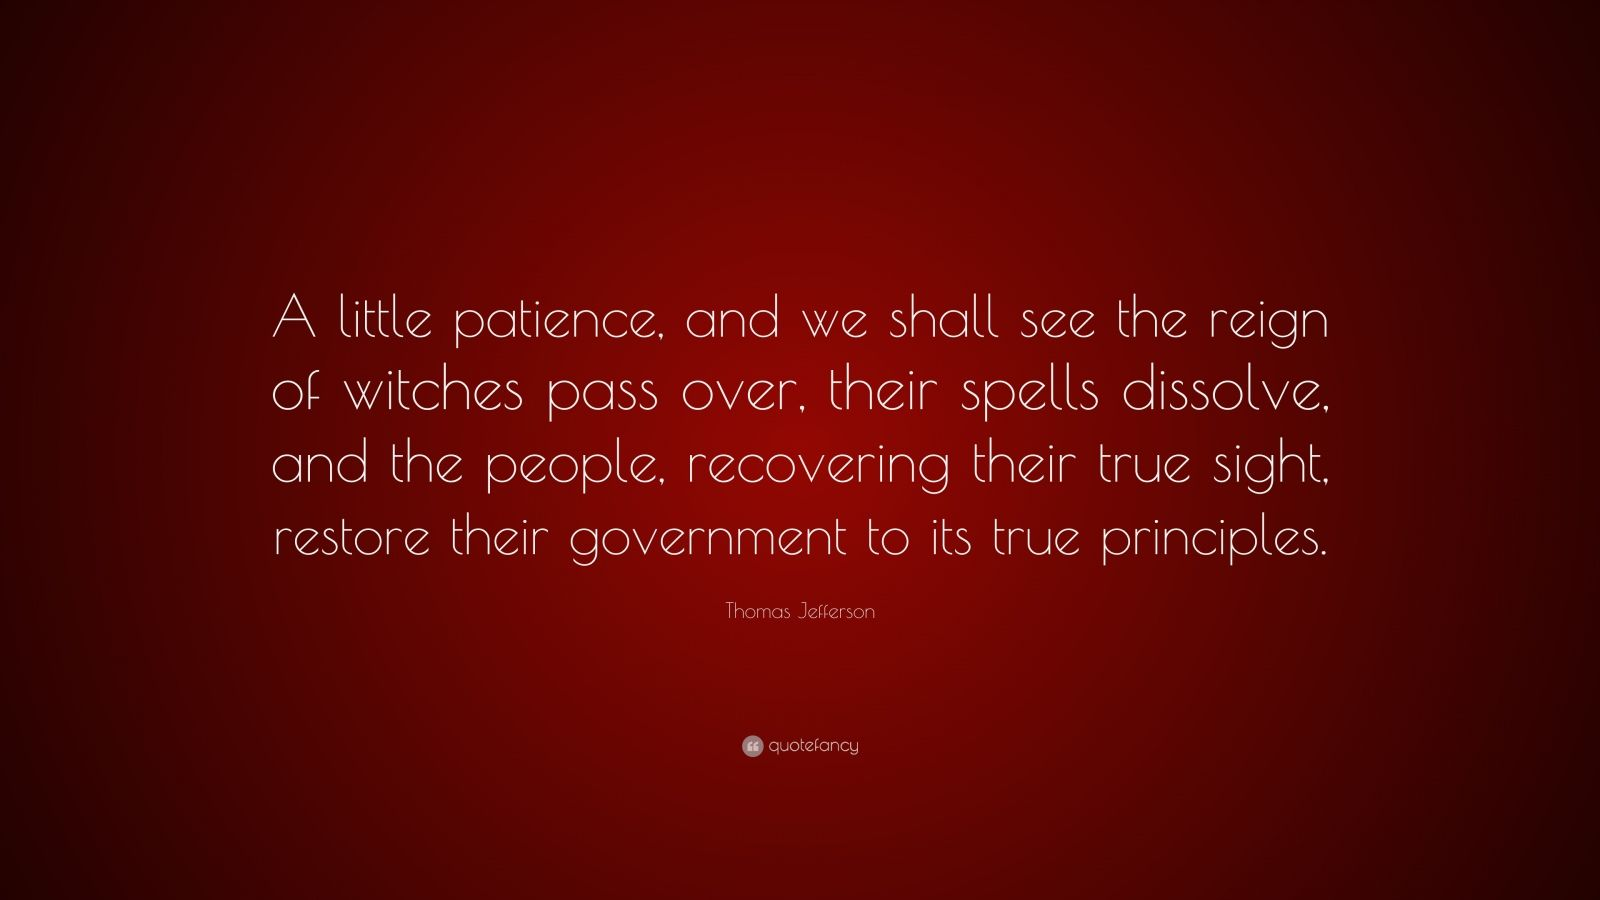 """Thomas Jefferson Quote: """"A little patience, and we shall see the reign of witches pass over, their spells dissolve, and the people, recovering their true sight, restore their government to its true principles."""""""